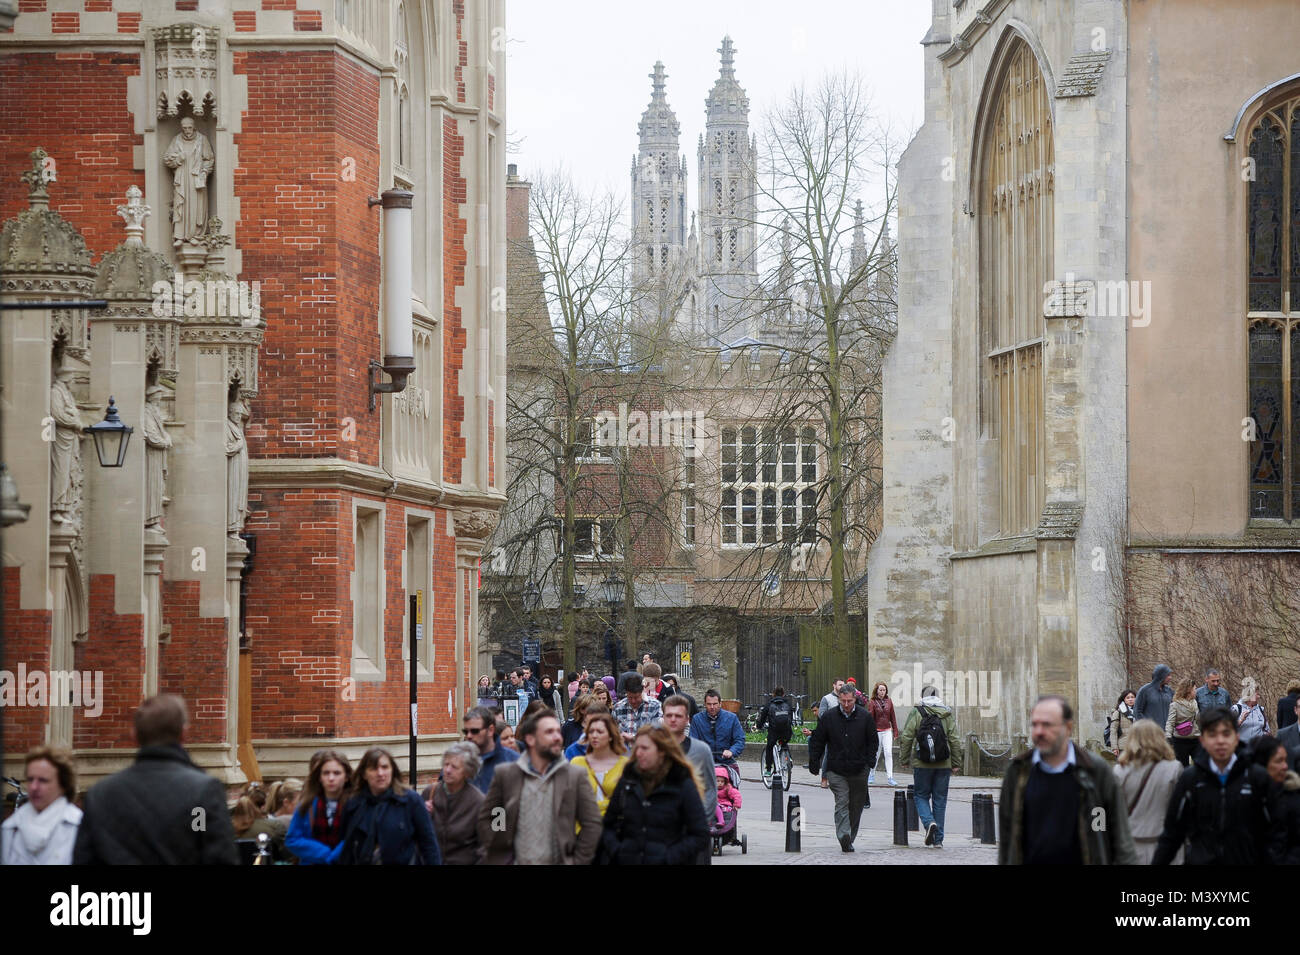 Old Divinity School of St John's College founded in 1511, Trinity College from 1546 and Gothic Chapel Trinity - Stock Image